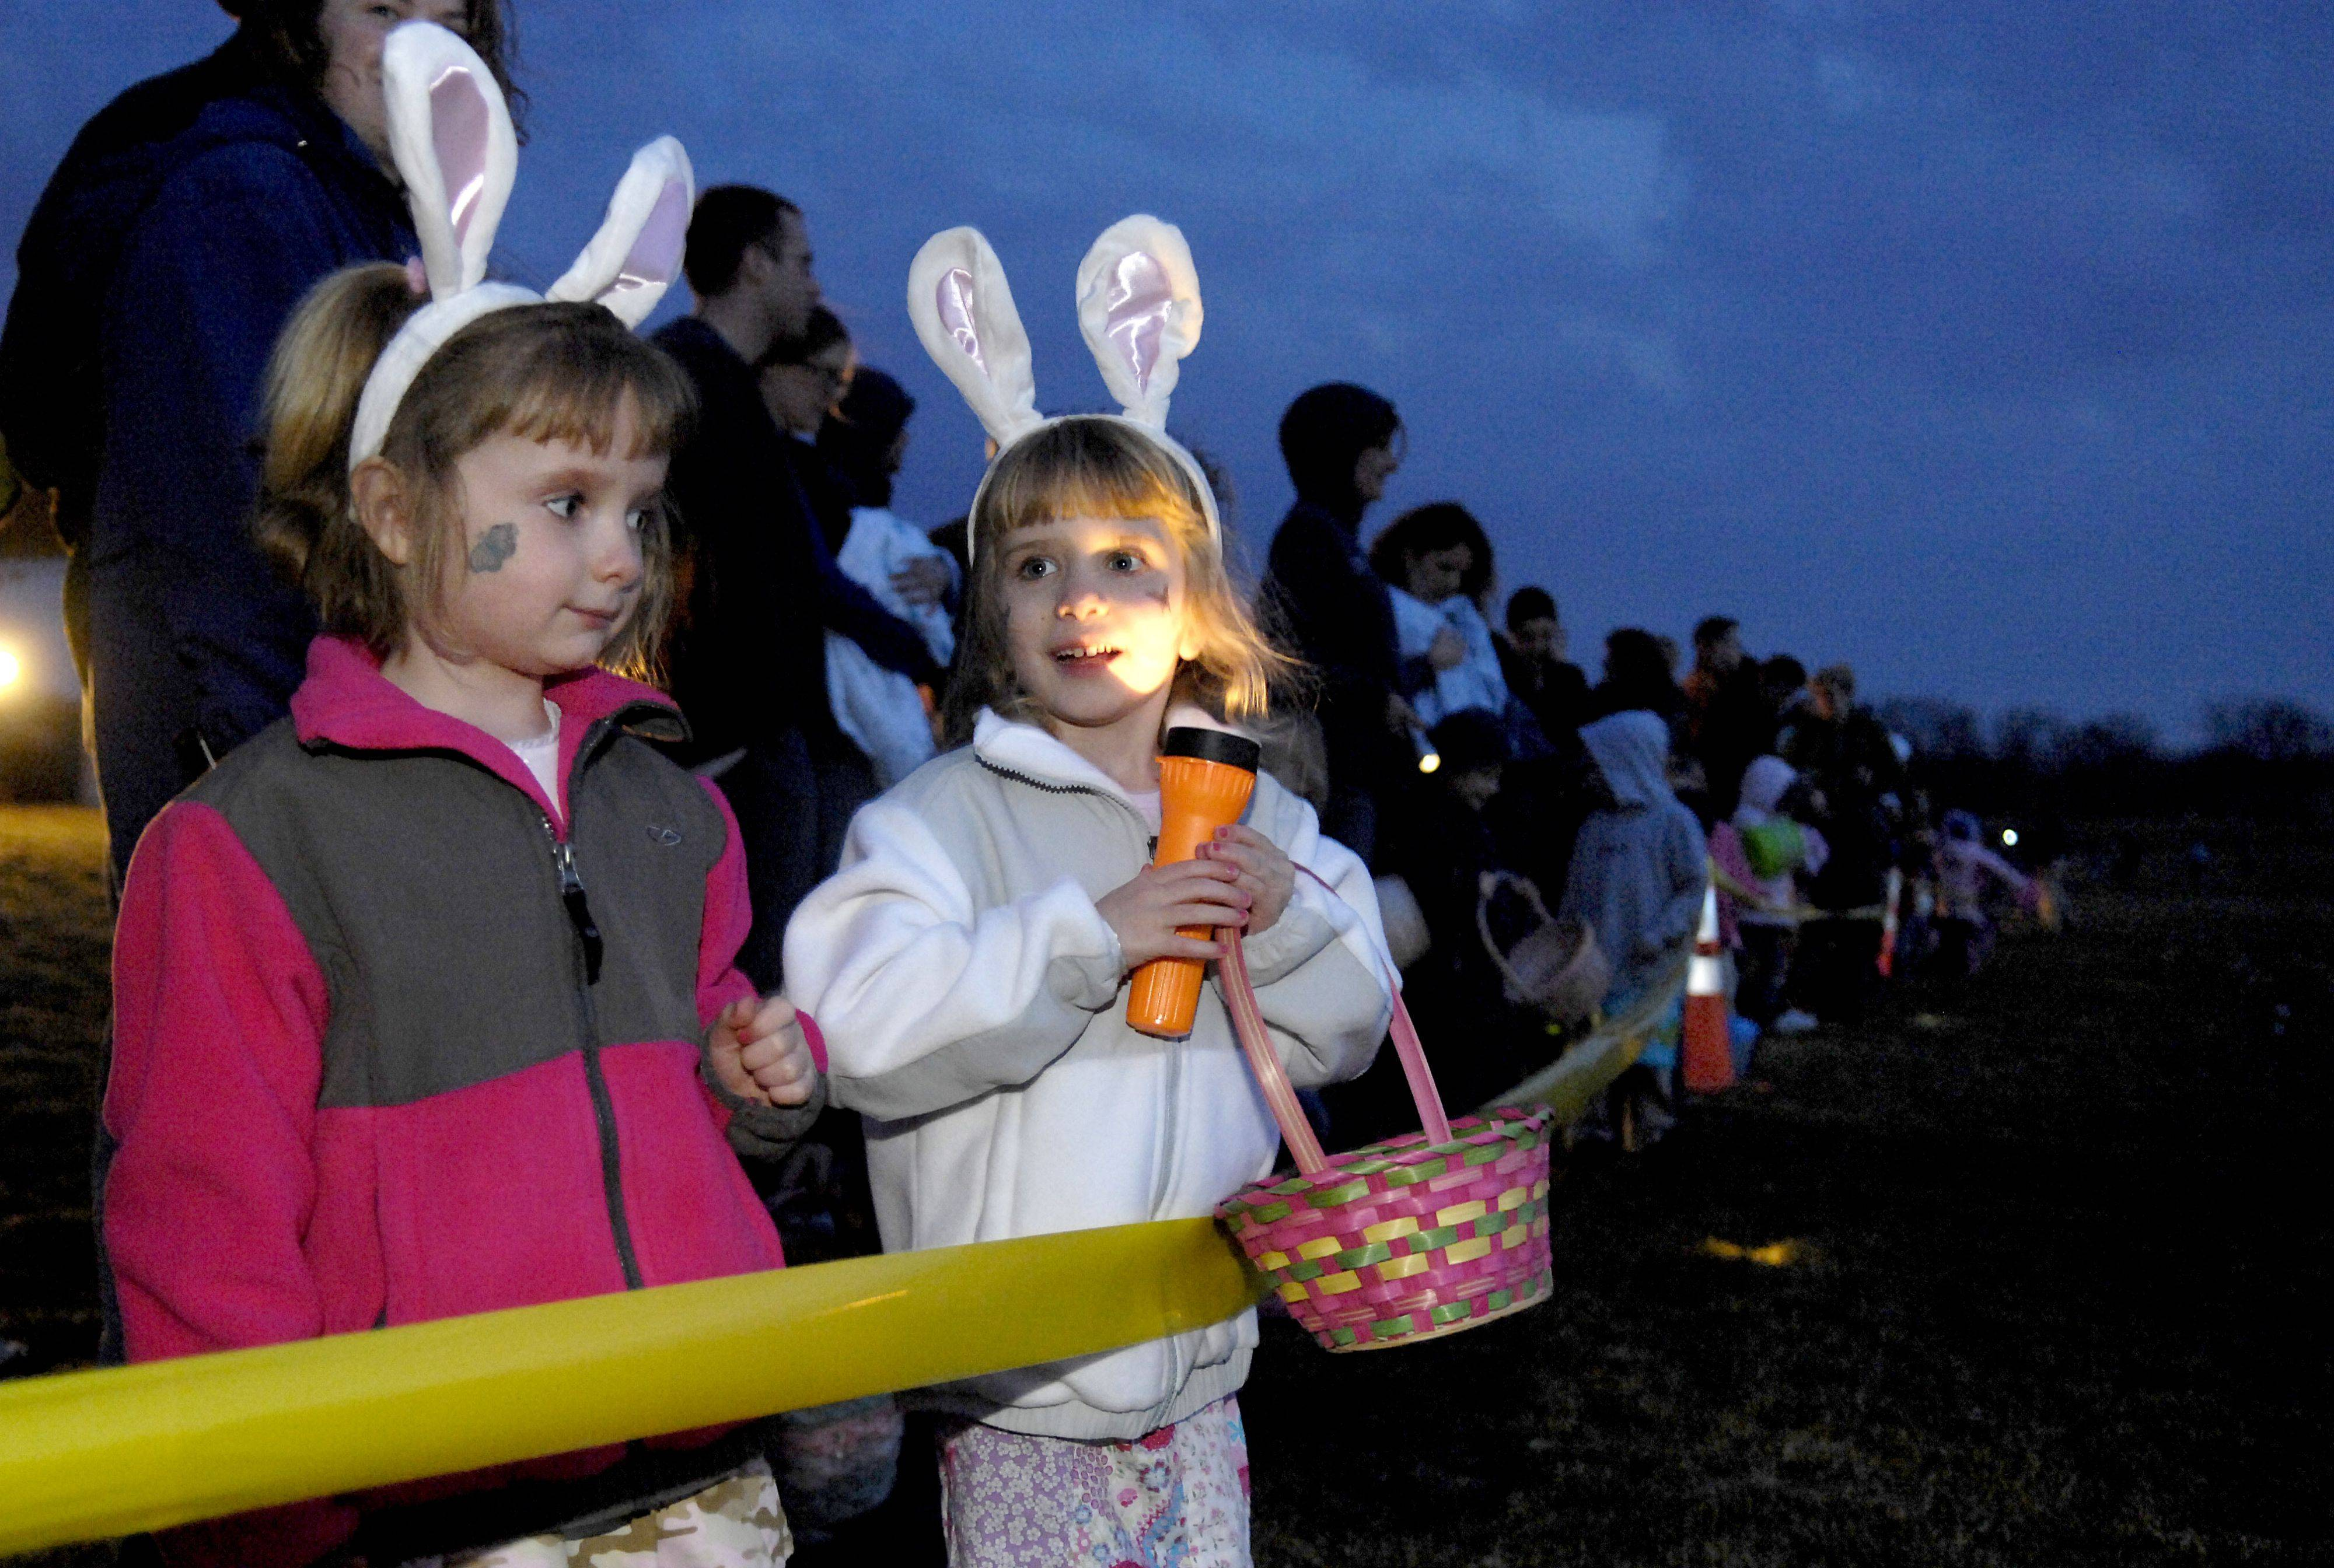 Laura Stoecker/lstoecker@dailyherald.com � Easter basket? Check. Bunny ears? Check. Flashlight?! Annika and Zoe Kippley, 4, twins from Batavia, wait anxiously for the Batavia Easter egg hunt by flashlight to start at Prairie Path Park on Friday, March 19. Kids aged 2-8 were let loose at 7:30 to hunt down their eggs.